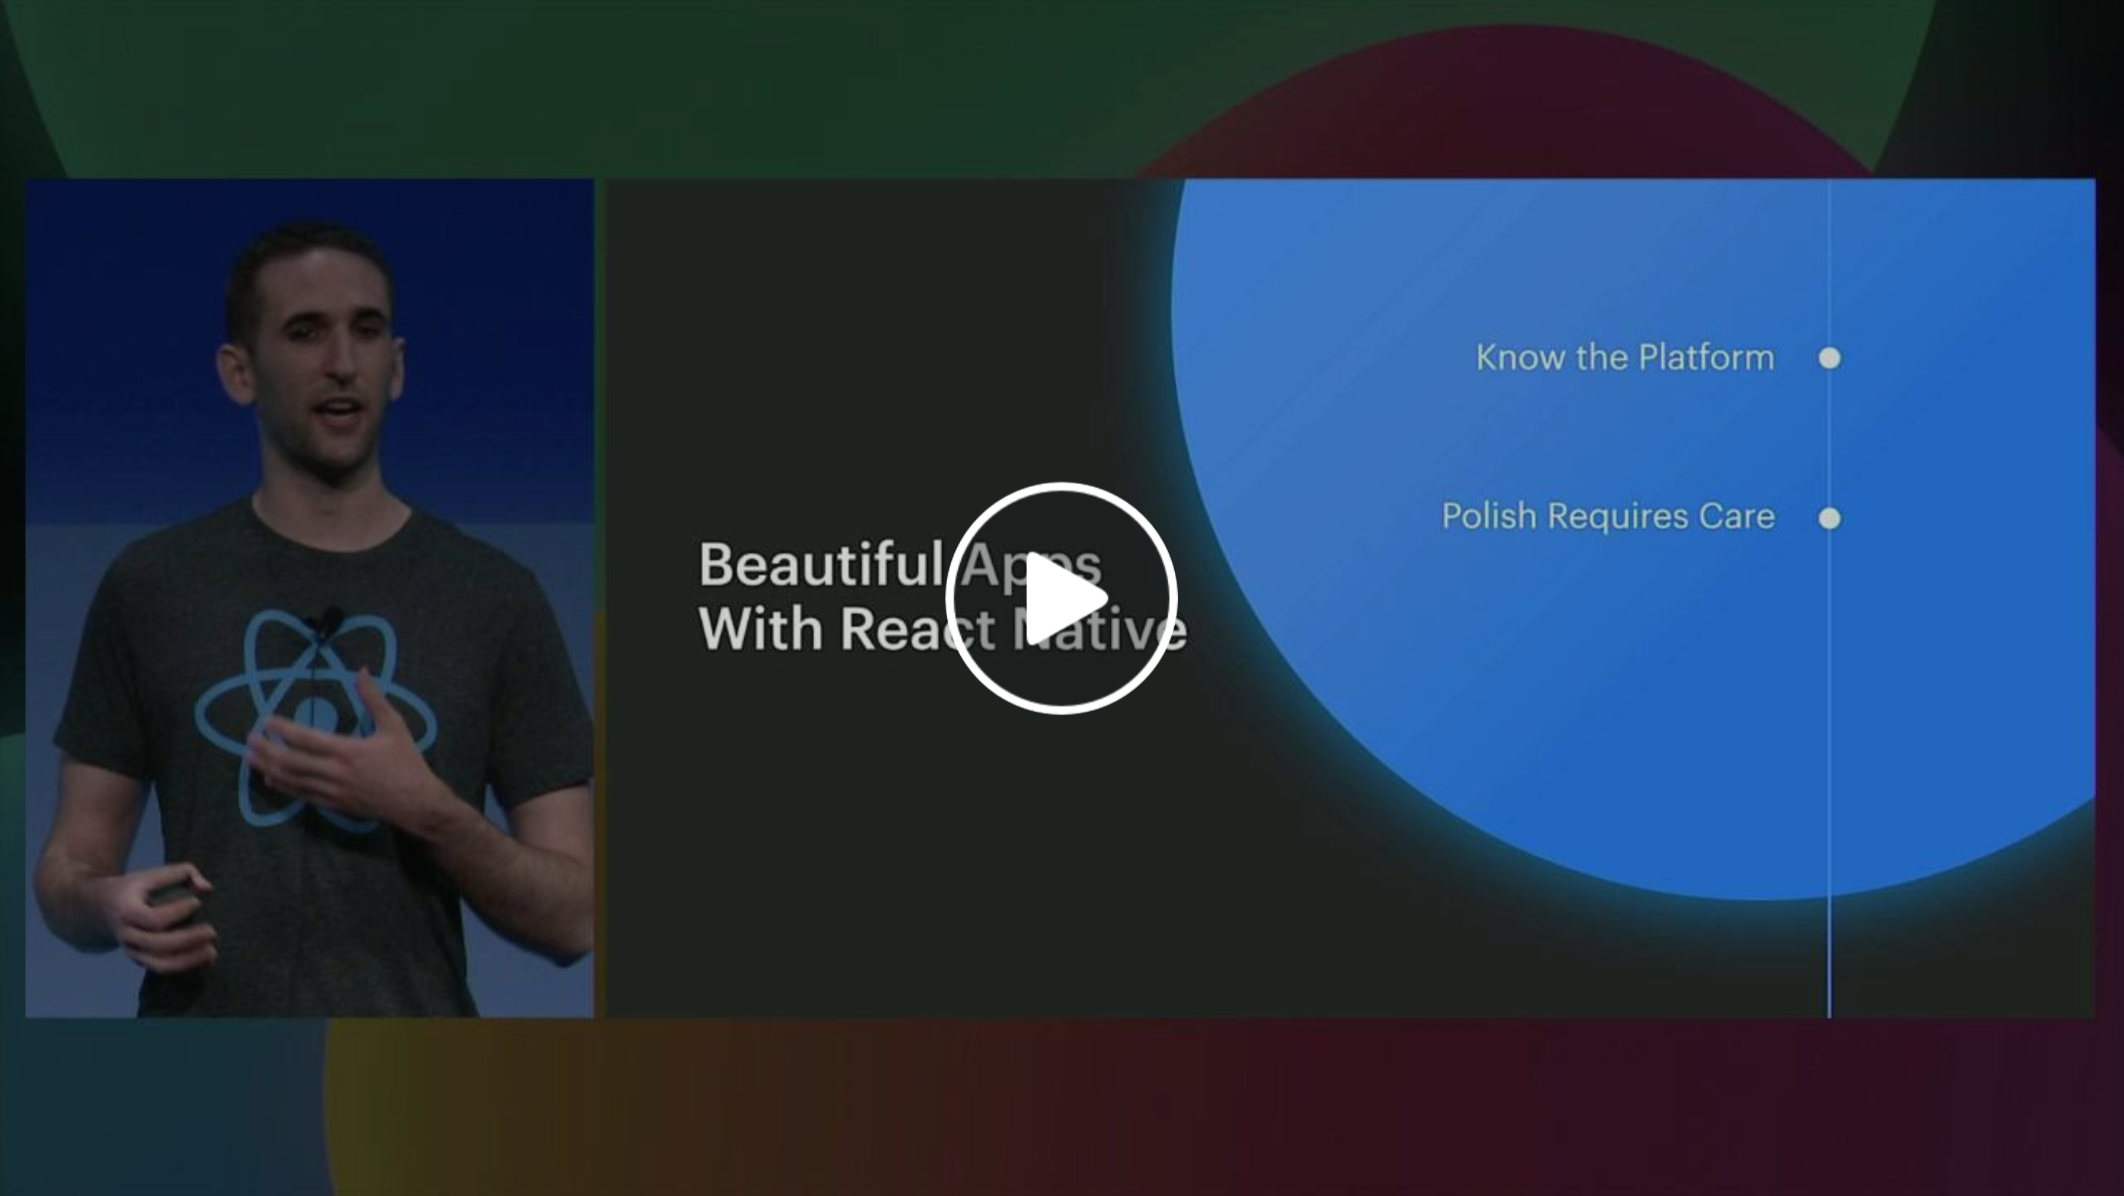 F8 Talk about React Native